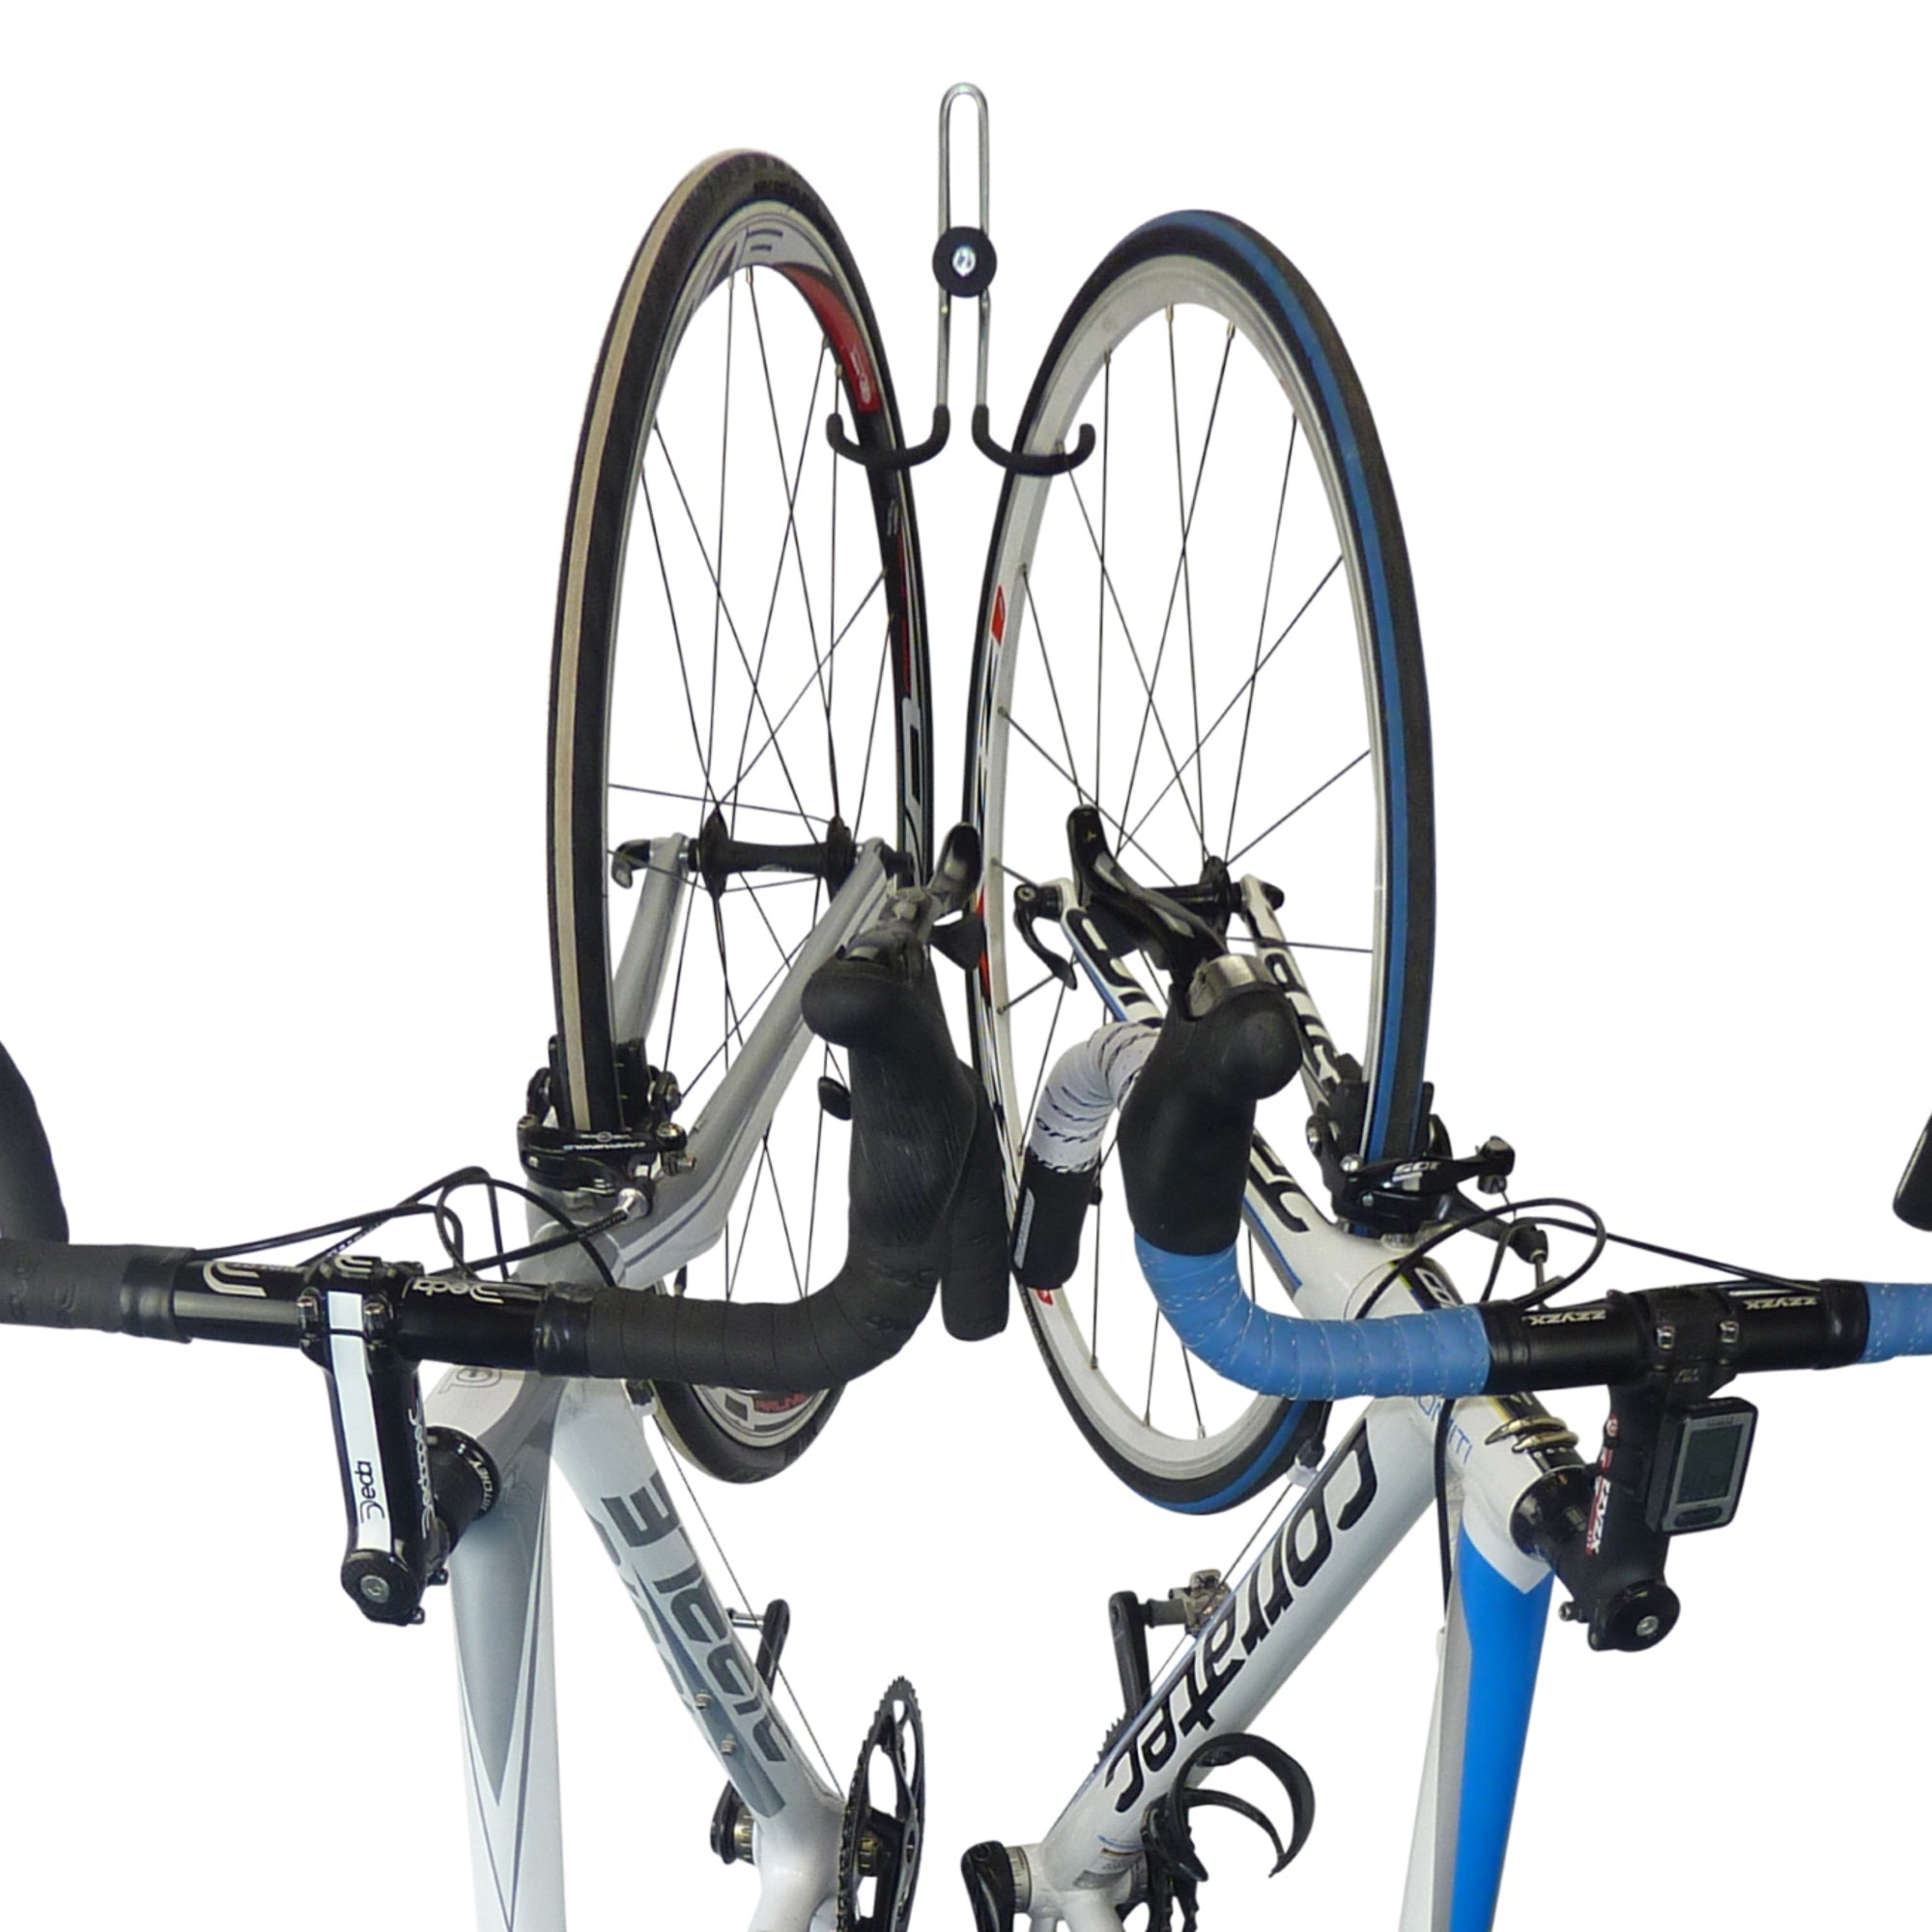 Double bike storage hook with 2 road bikes